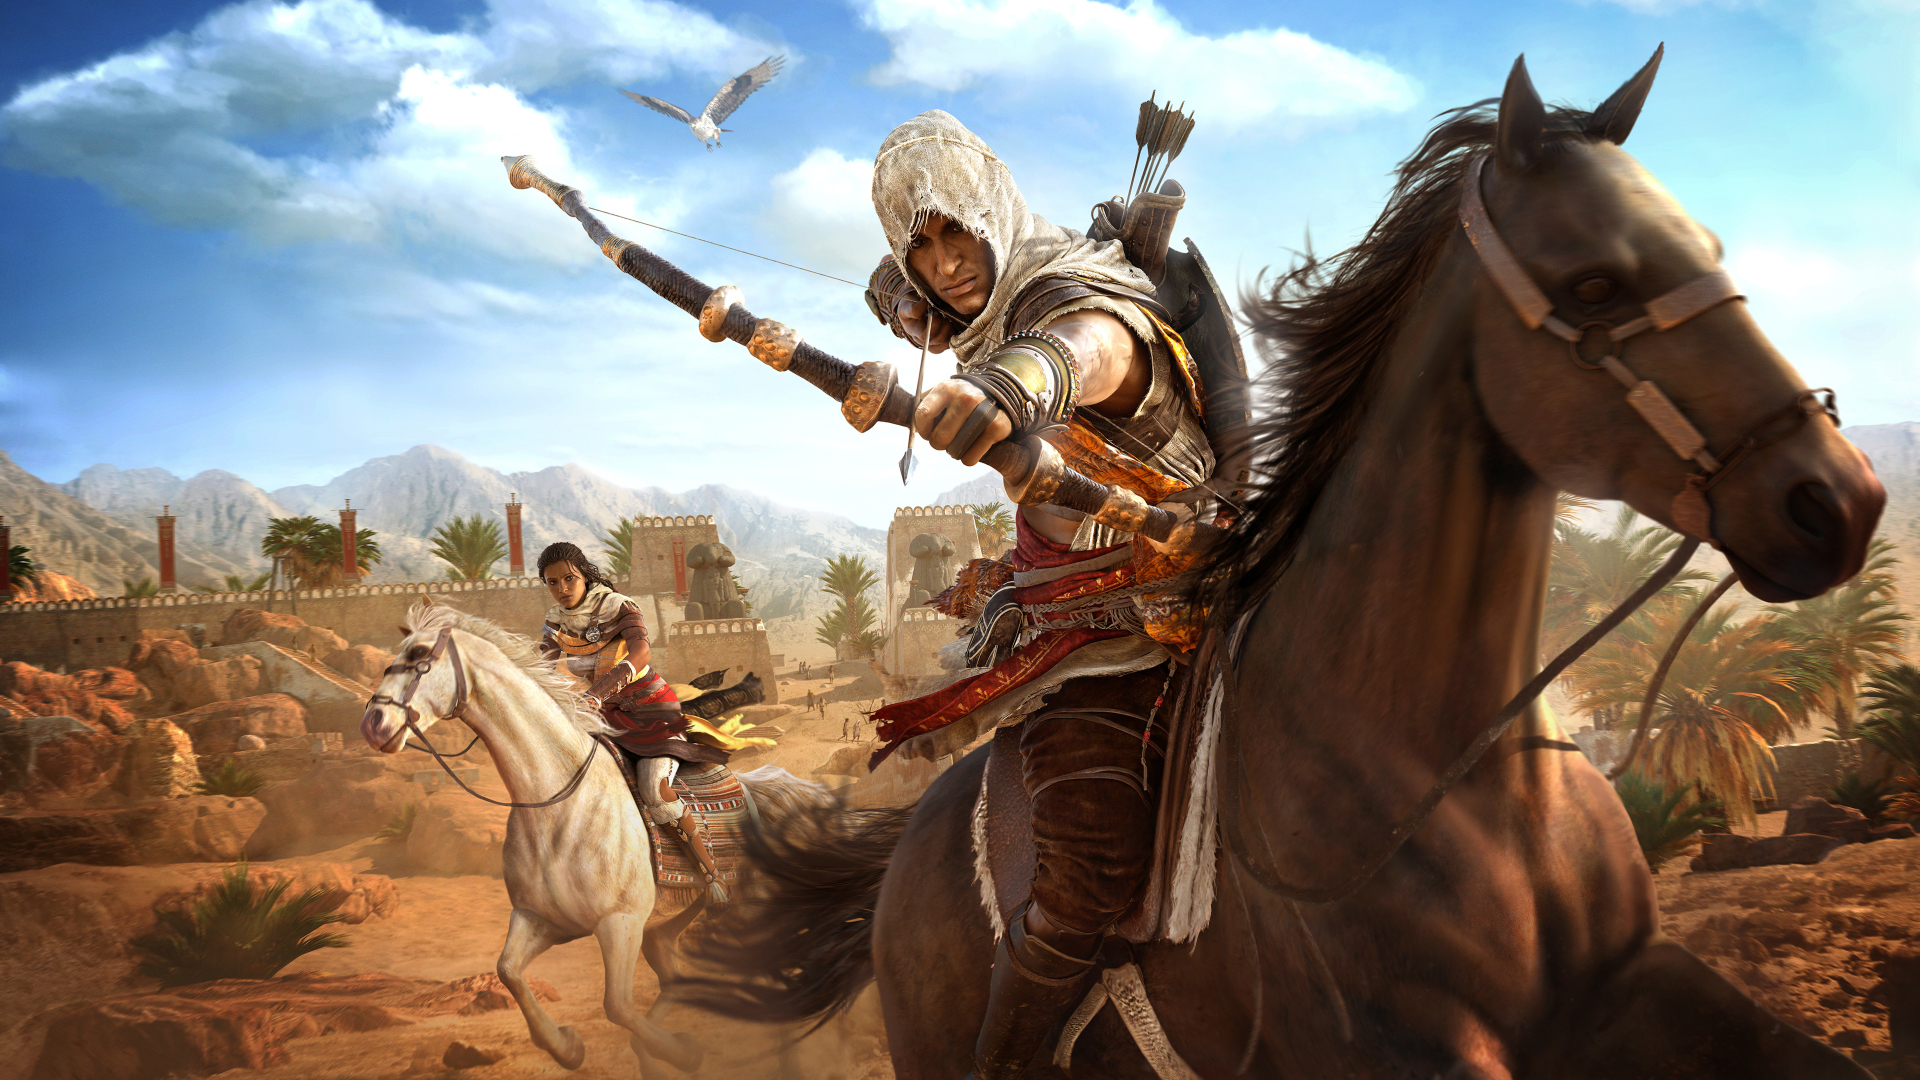 1920x1080 Assassins Creed Origins Bayek And Aya 1080p Laptop Full Hd Wallpaper Hd Games 4k Wallpapers Images Photos And Background